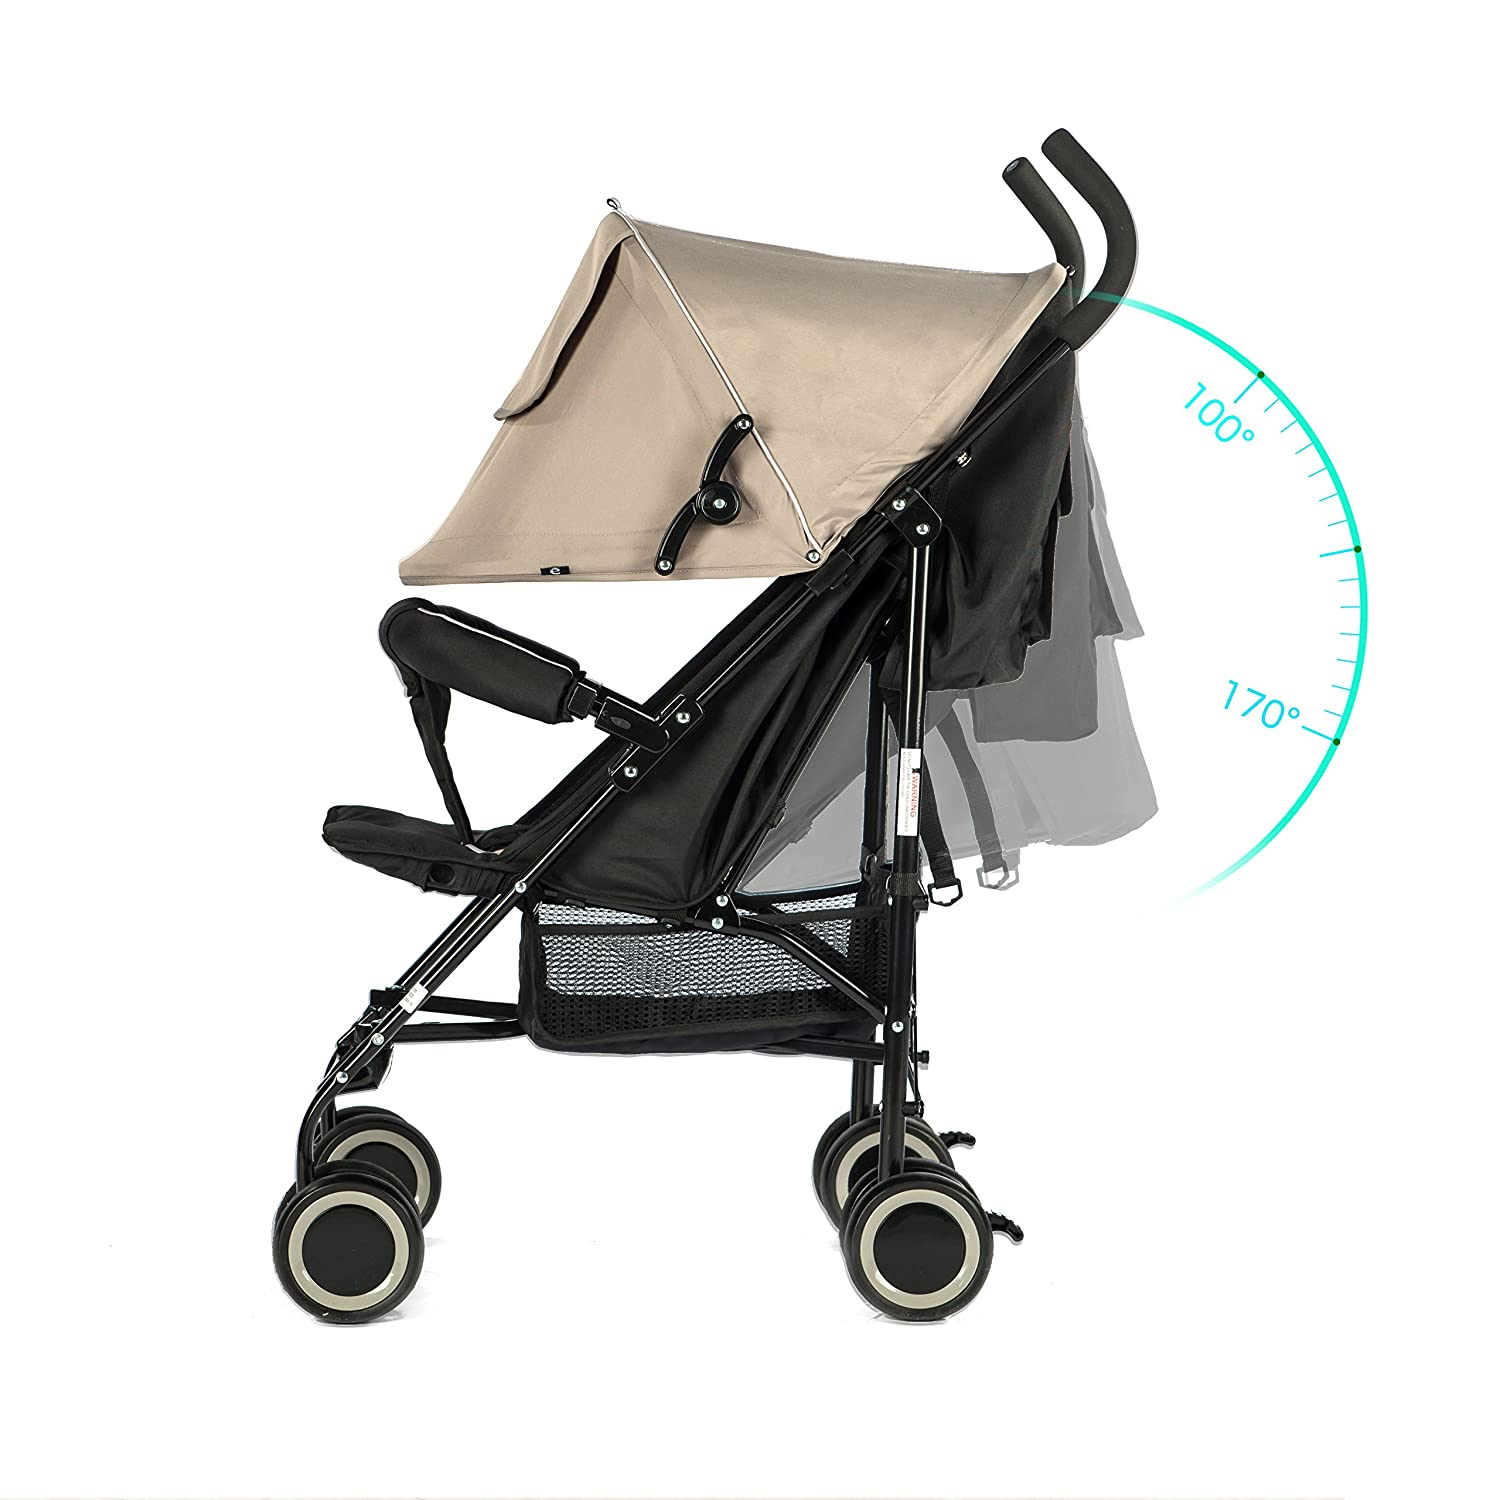 EVEZO 2141A Full-Size Ultra Lightweight Umbrella Stroller, Reclining Seat, 5-Point Safety Harness, Canopy, Storage Bin (Taupe) 214-1A